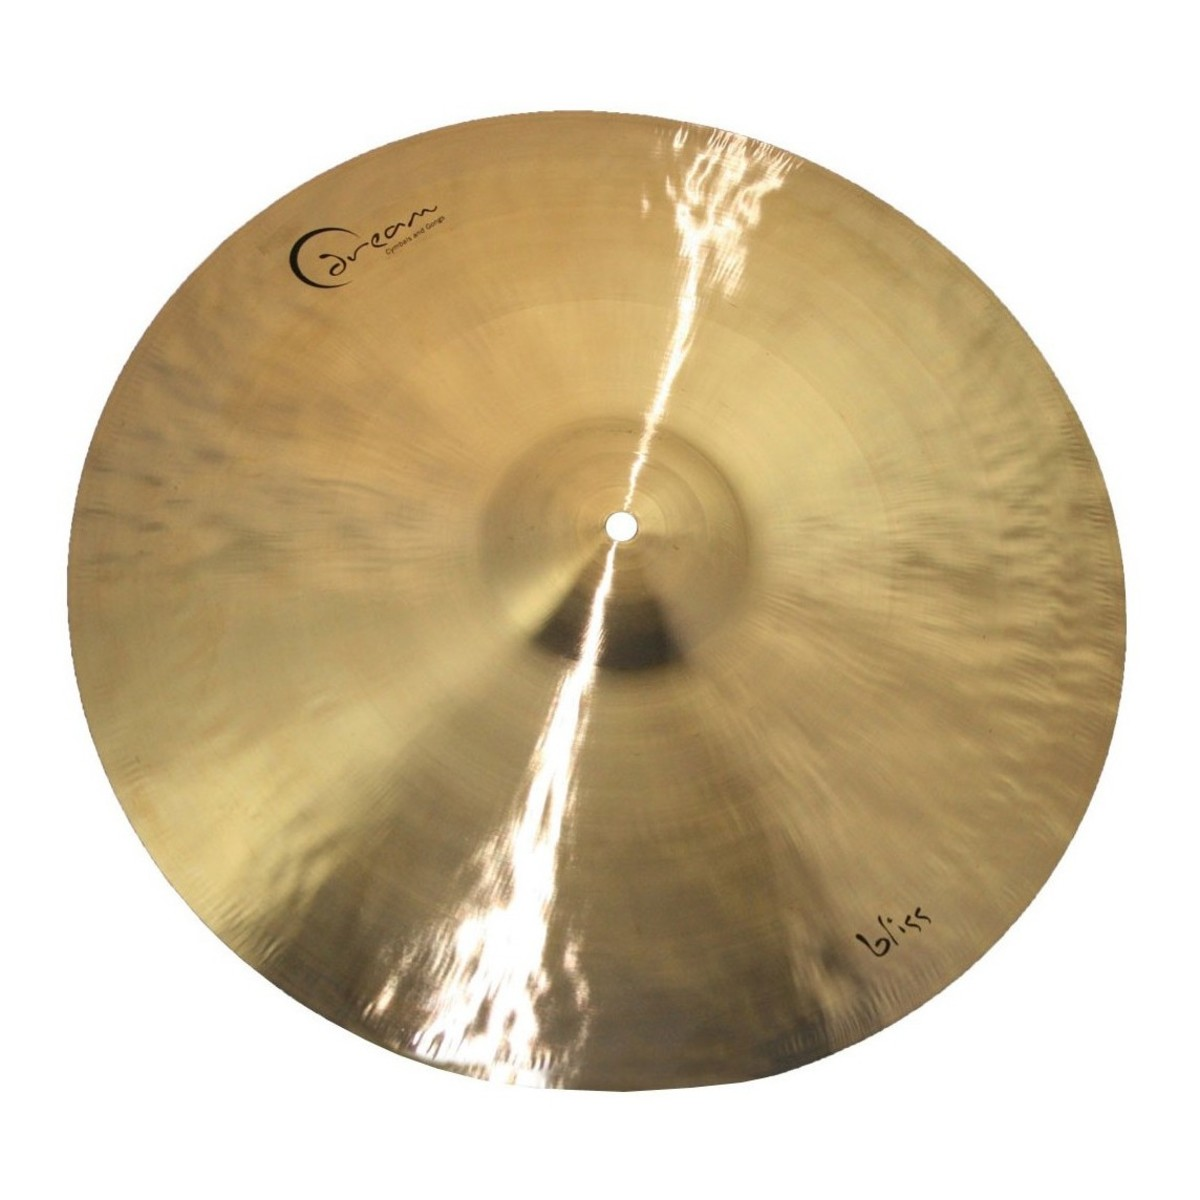 dream cymbals bliss series paper thin crash 19 b stock at gear4music. Black Bedroom Furniture Sets. Home Design Ideas